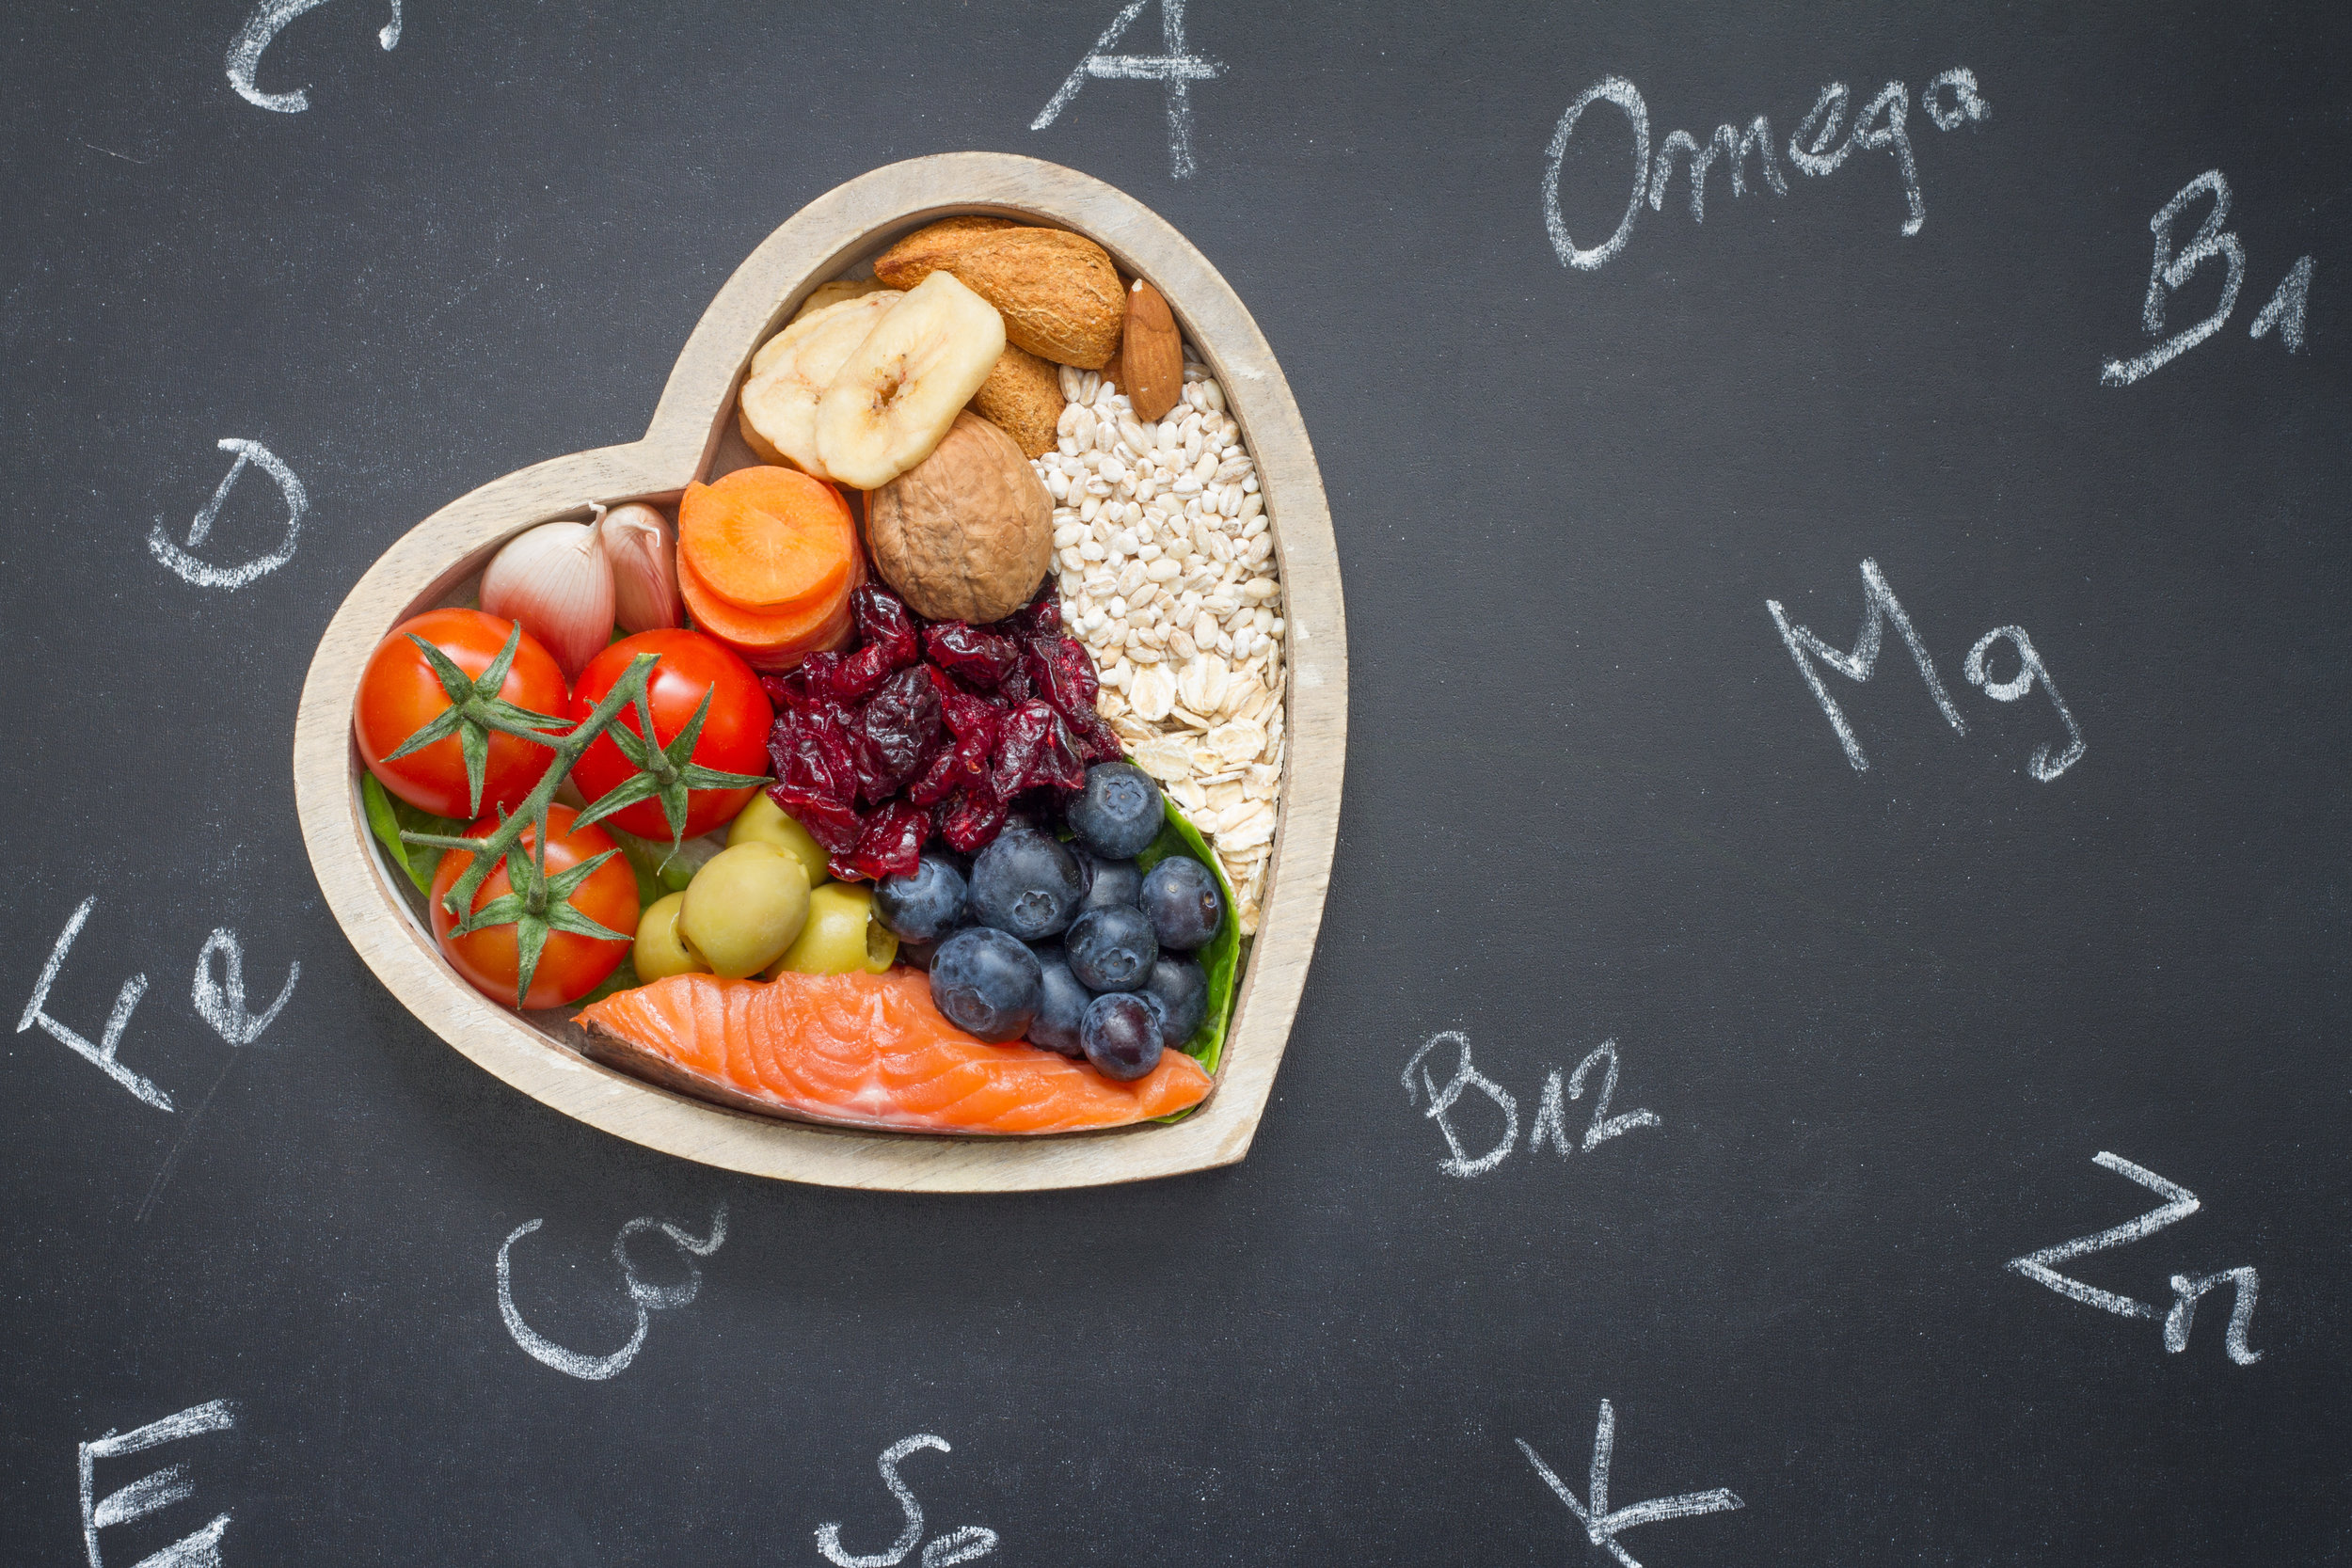 Nutritional Sciences - Explore the fundamental science of food and nutrition.Learn More →